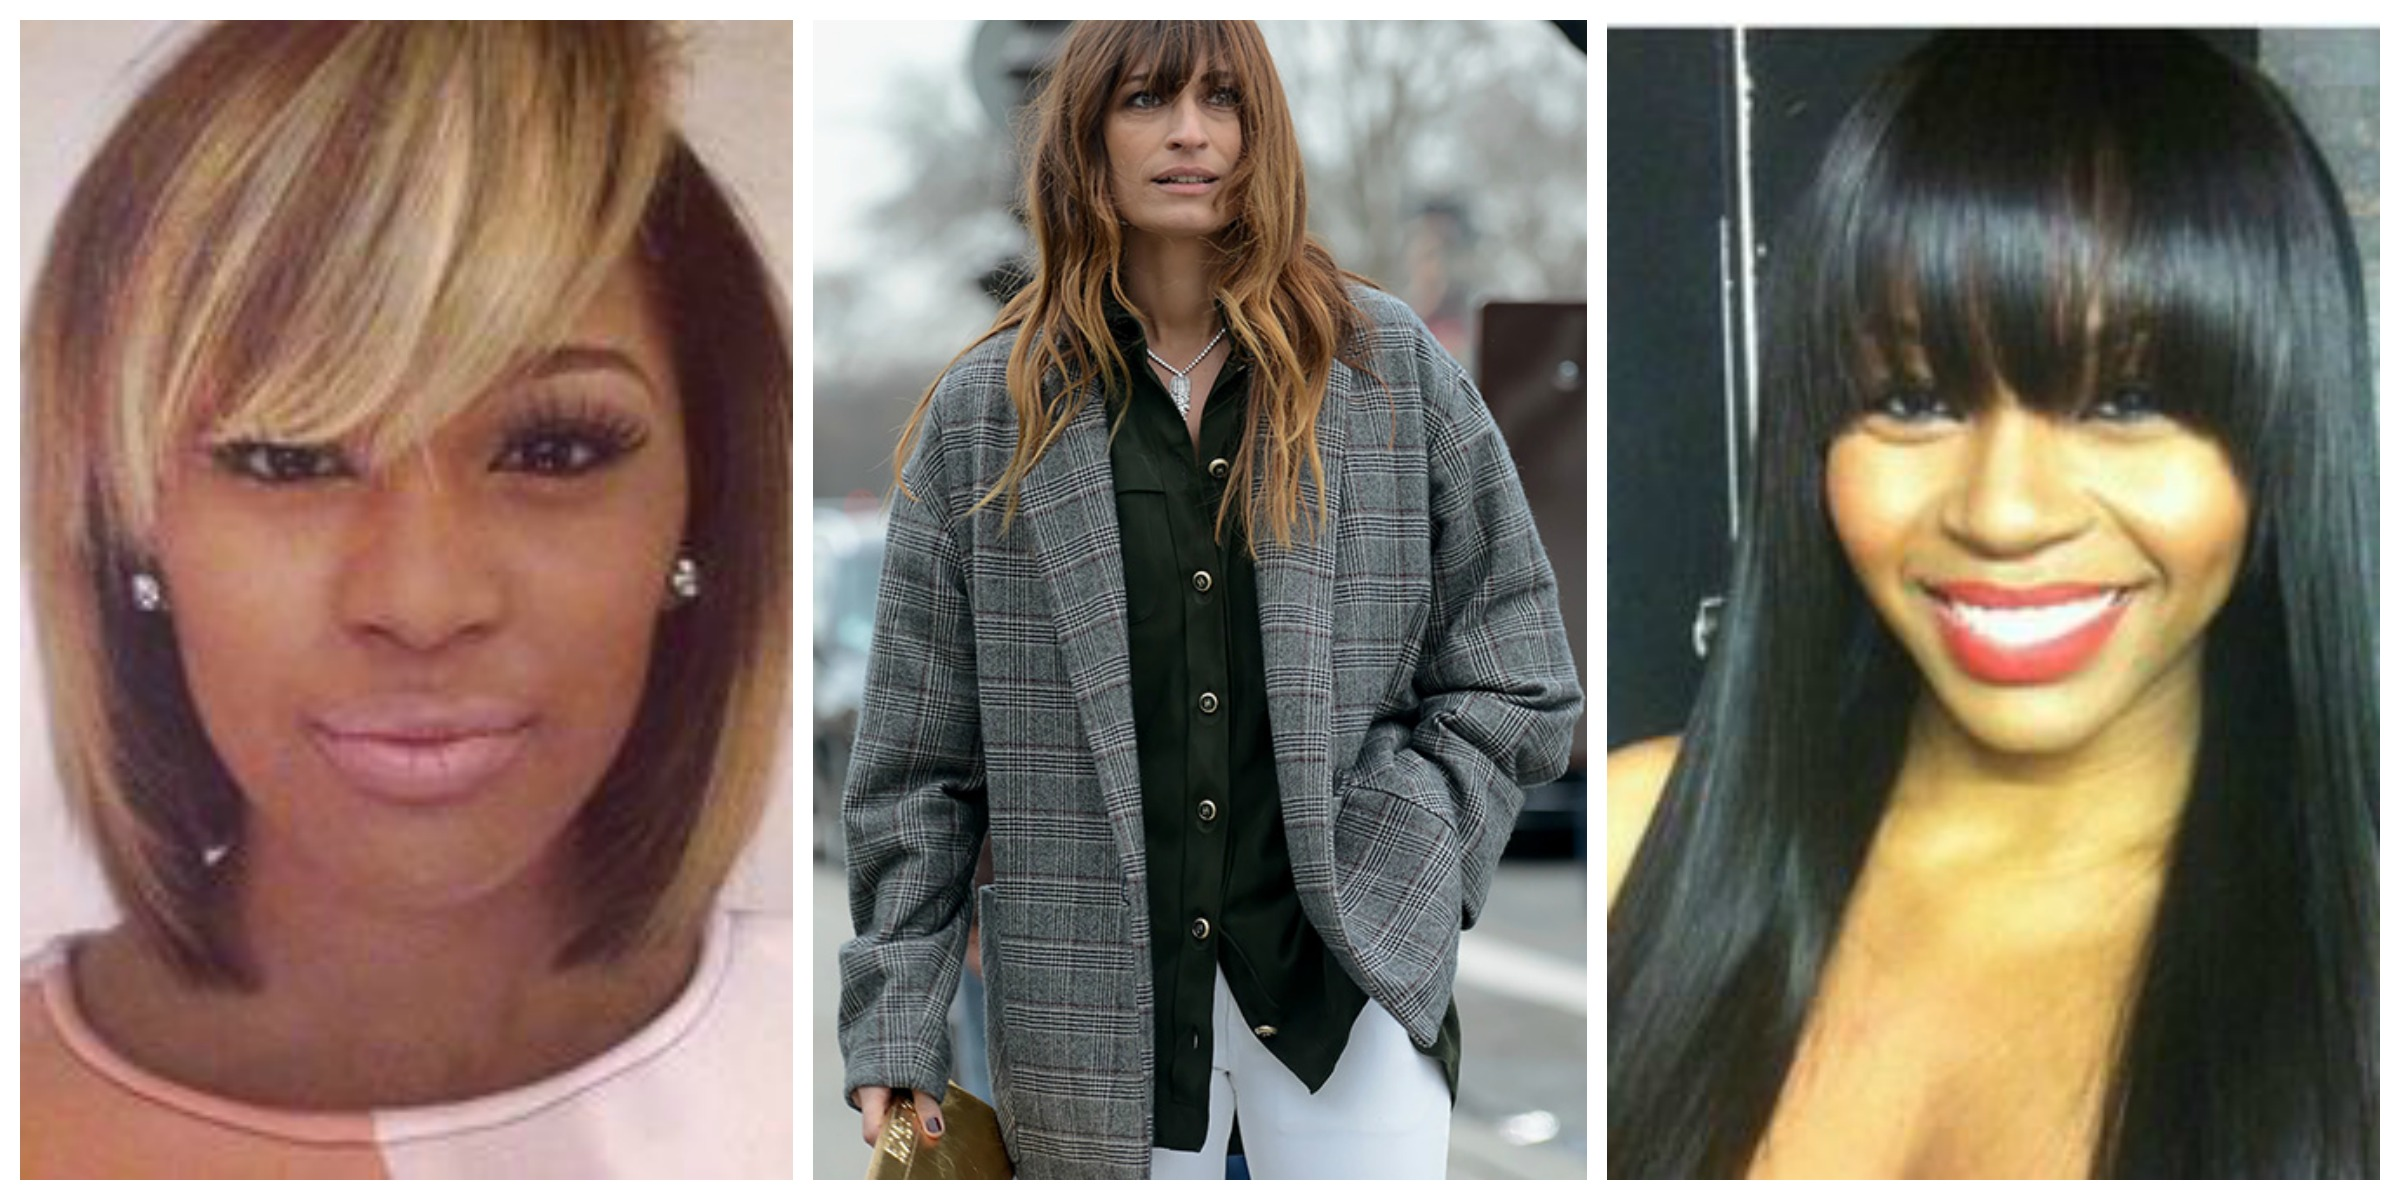 bangs-styles-face-shapes